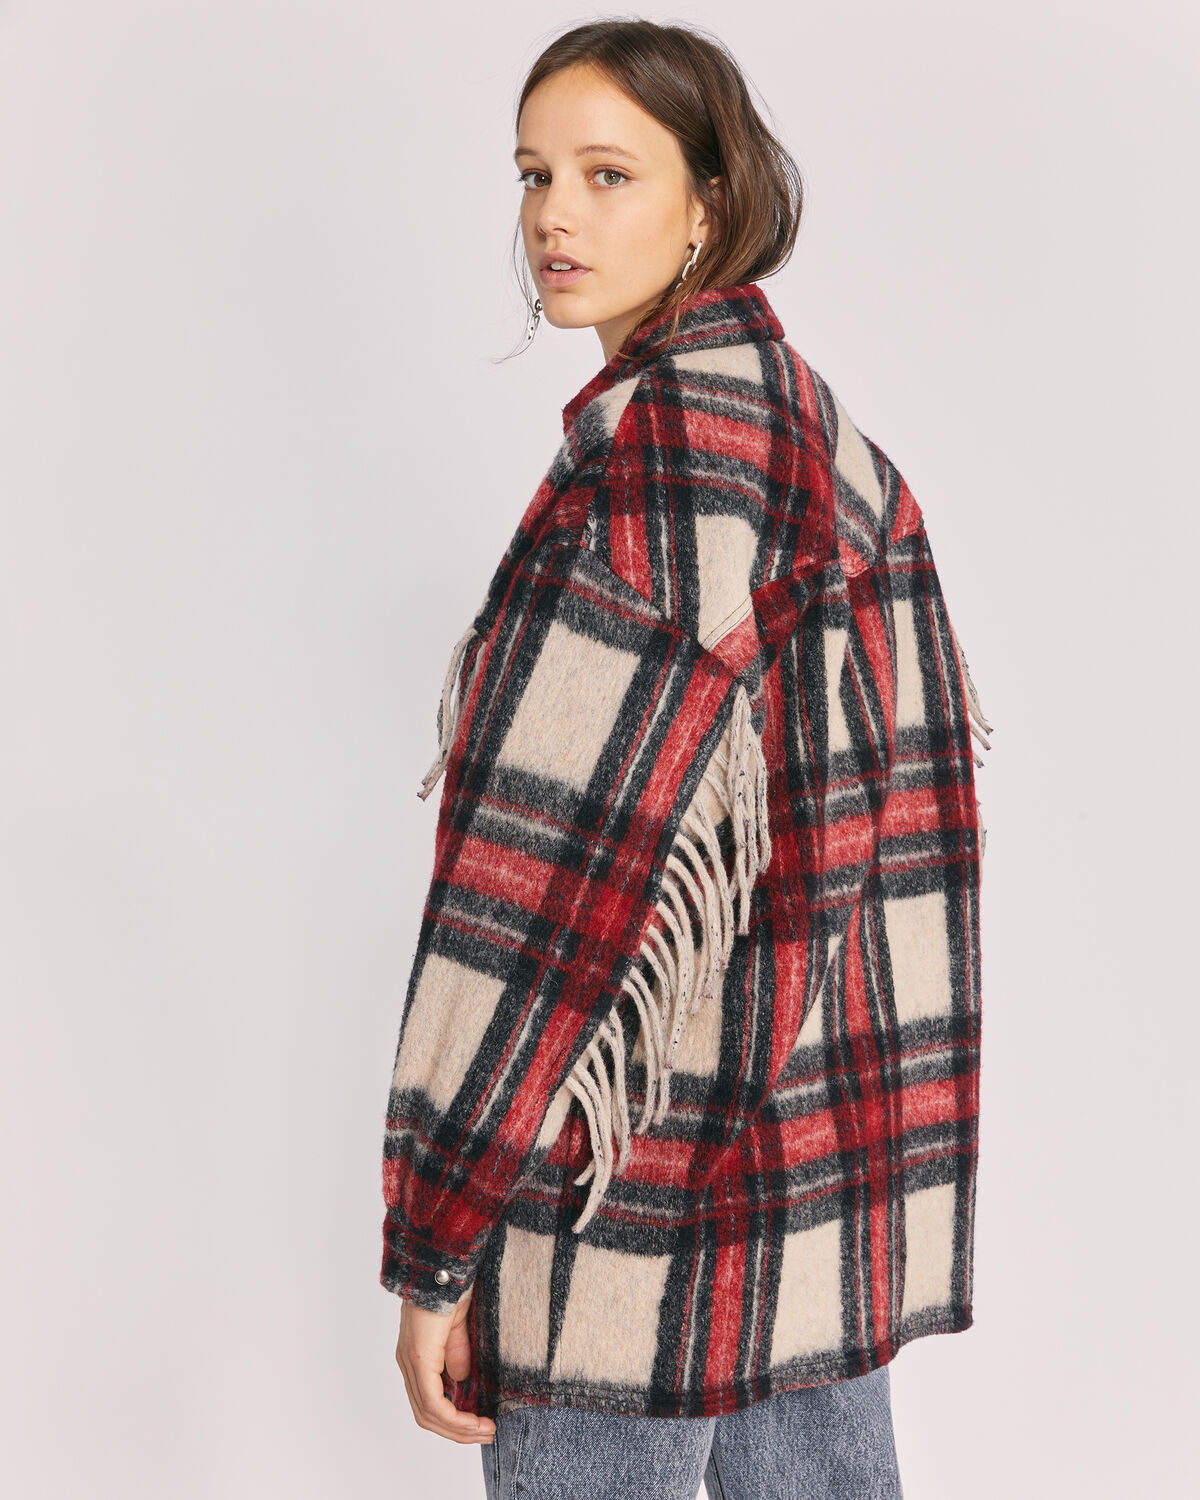 IRO - COCHA COAT BLACK/RED/ECRU